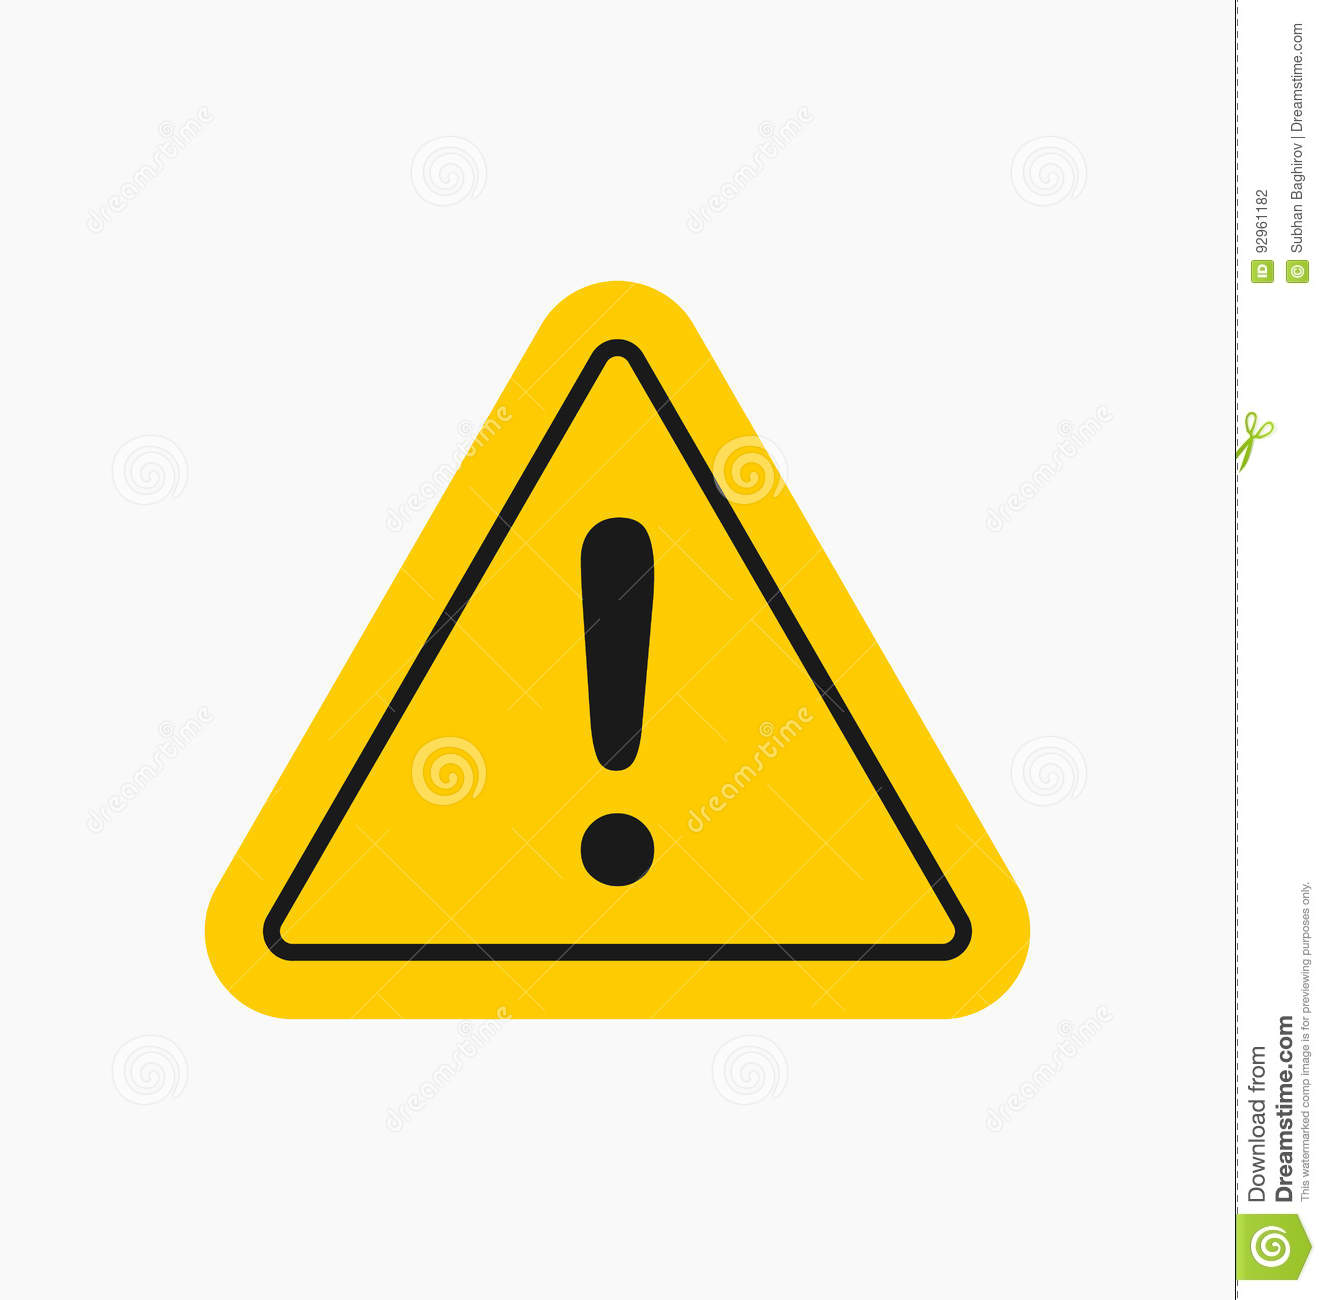 caution icon sign in flat style isolated warning symbol stock rh dreamstime com caution login help caution logo vector